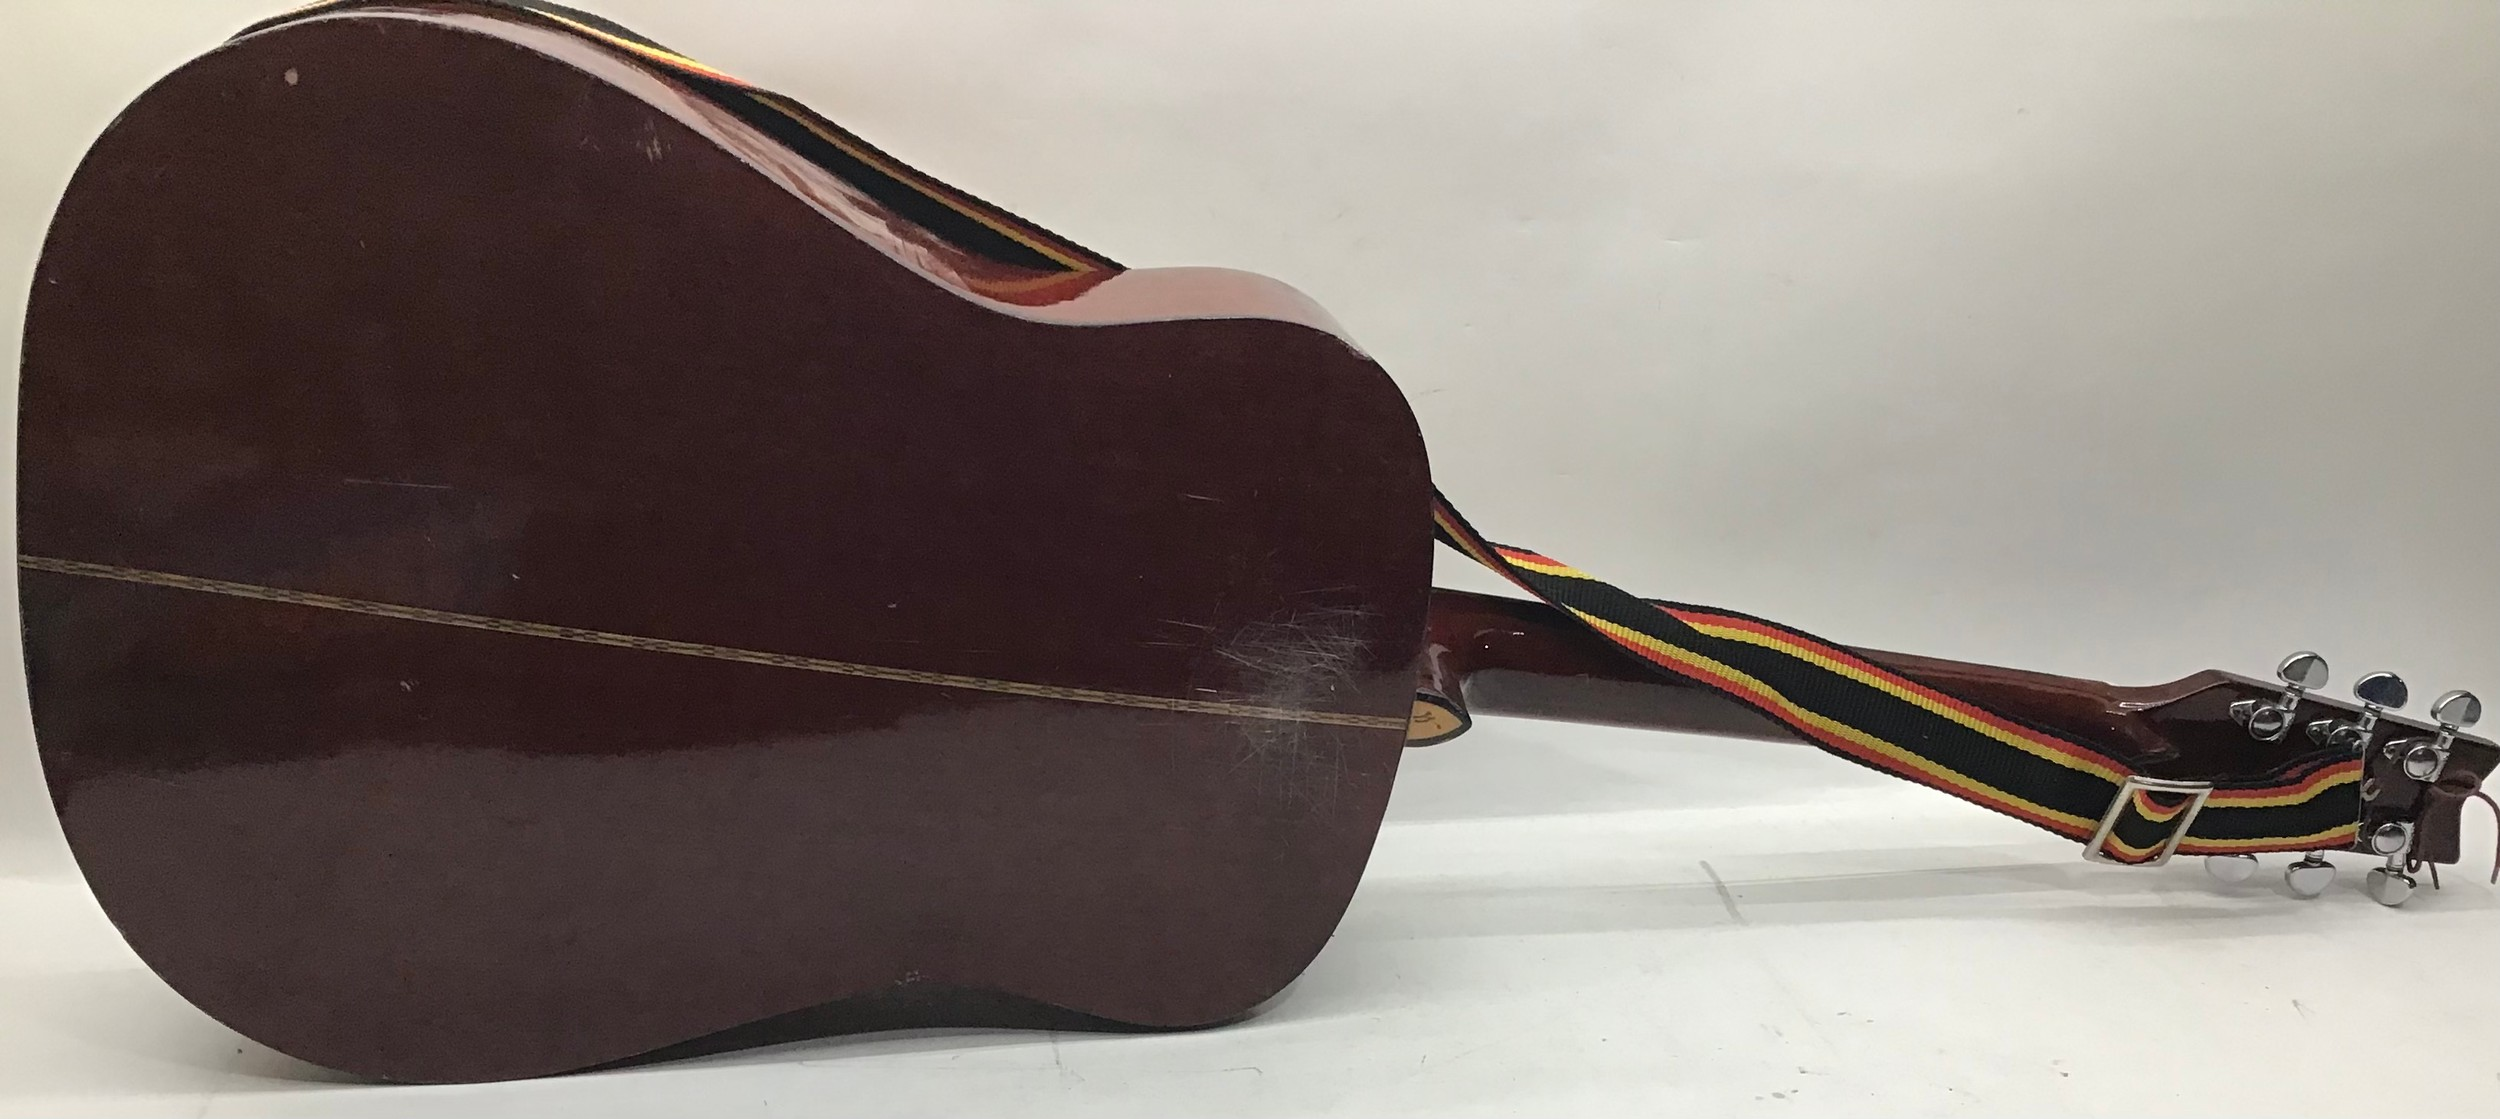 WASHBURN ACOUSTIC GUITAR. This 6 stringed guitar is finished in rosewood and comes with a strap. - Image 5 of 6